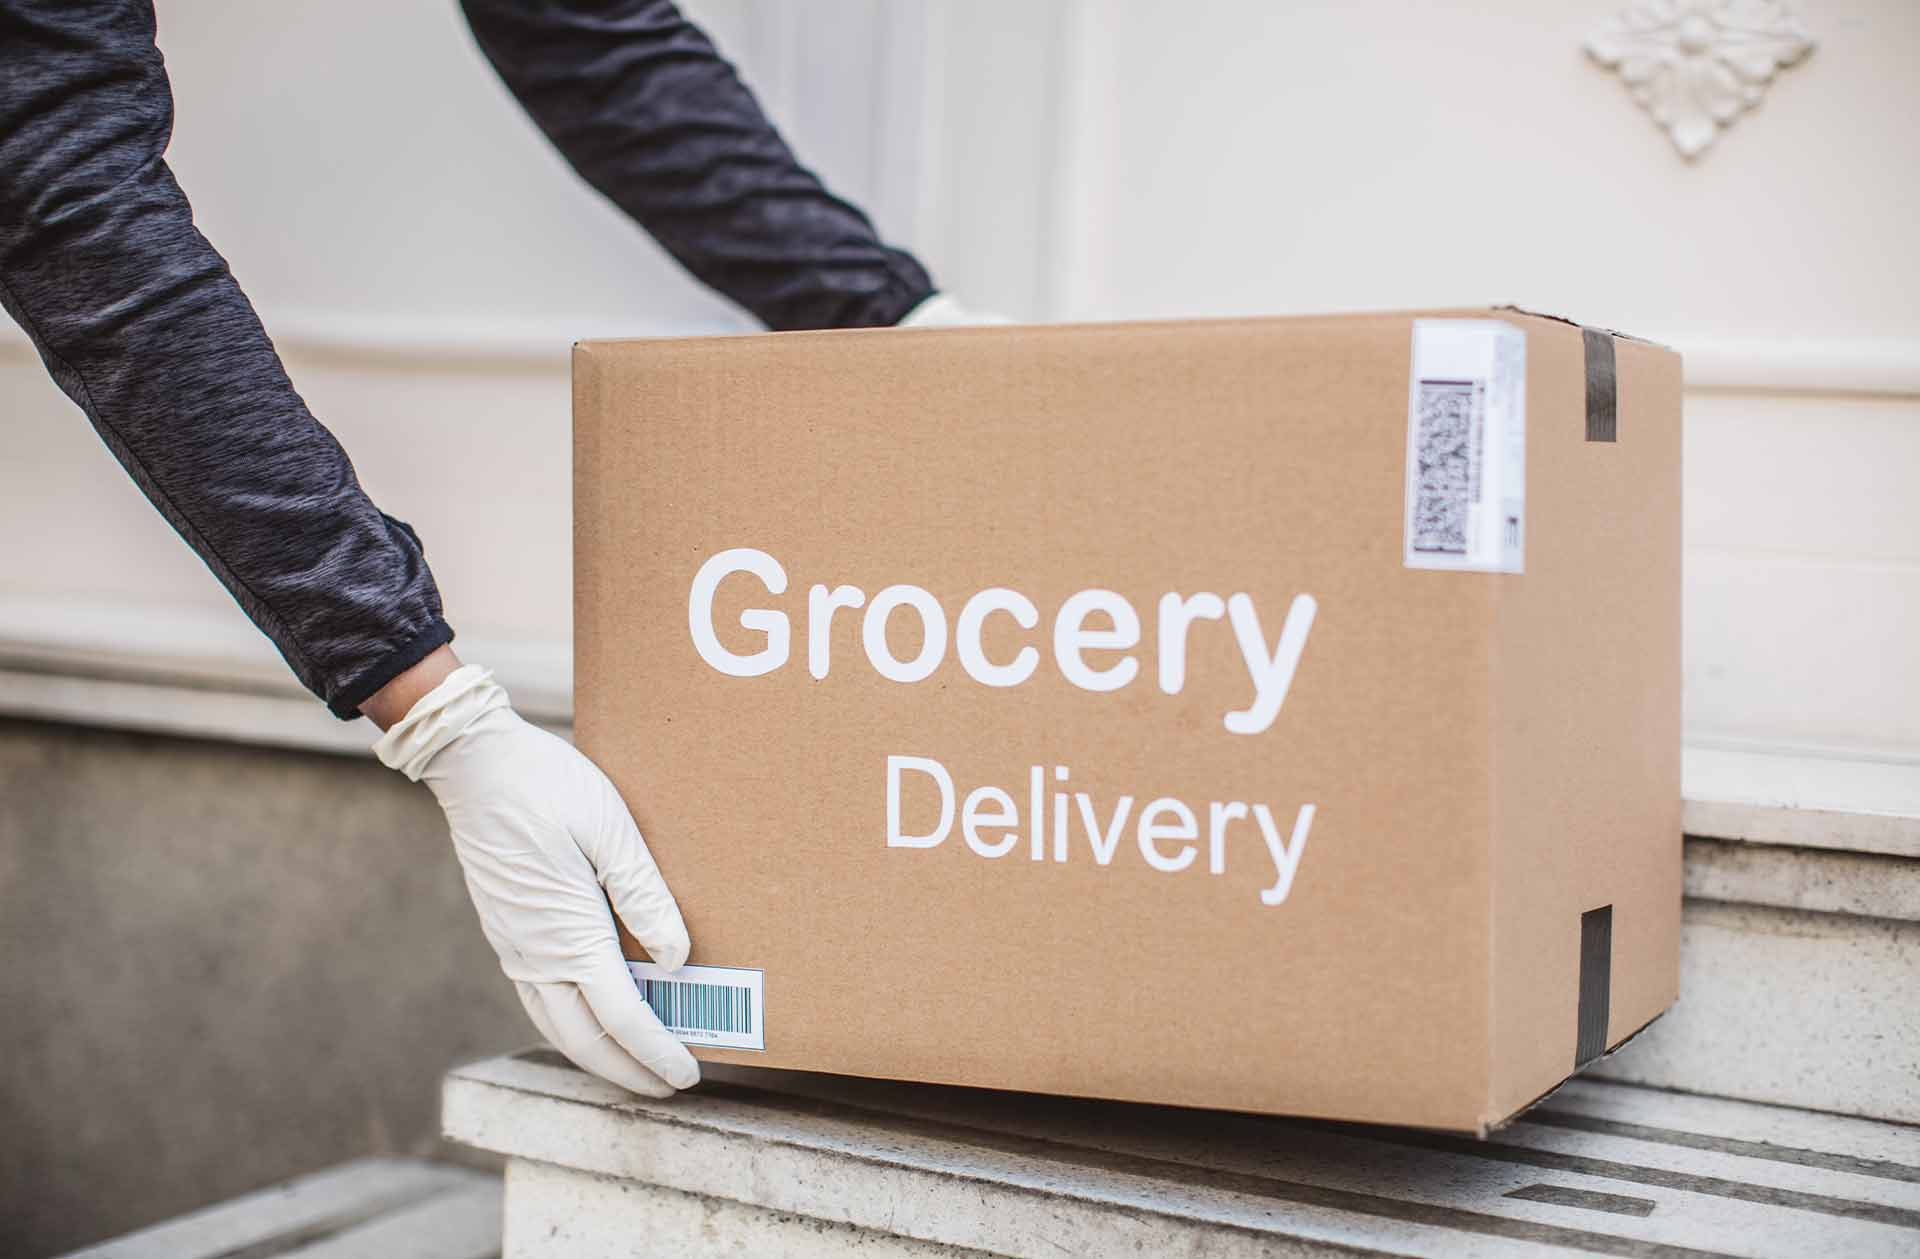 grocery_delivery_box_being_placed_on_steps